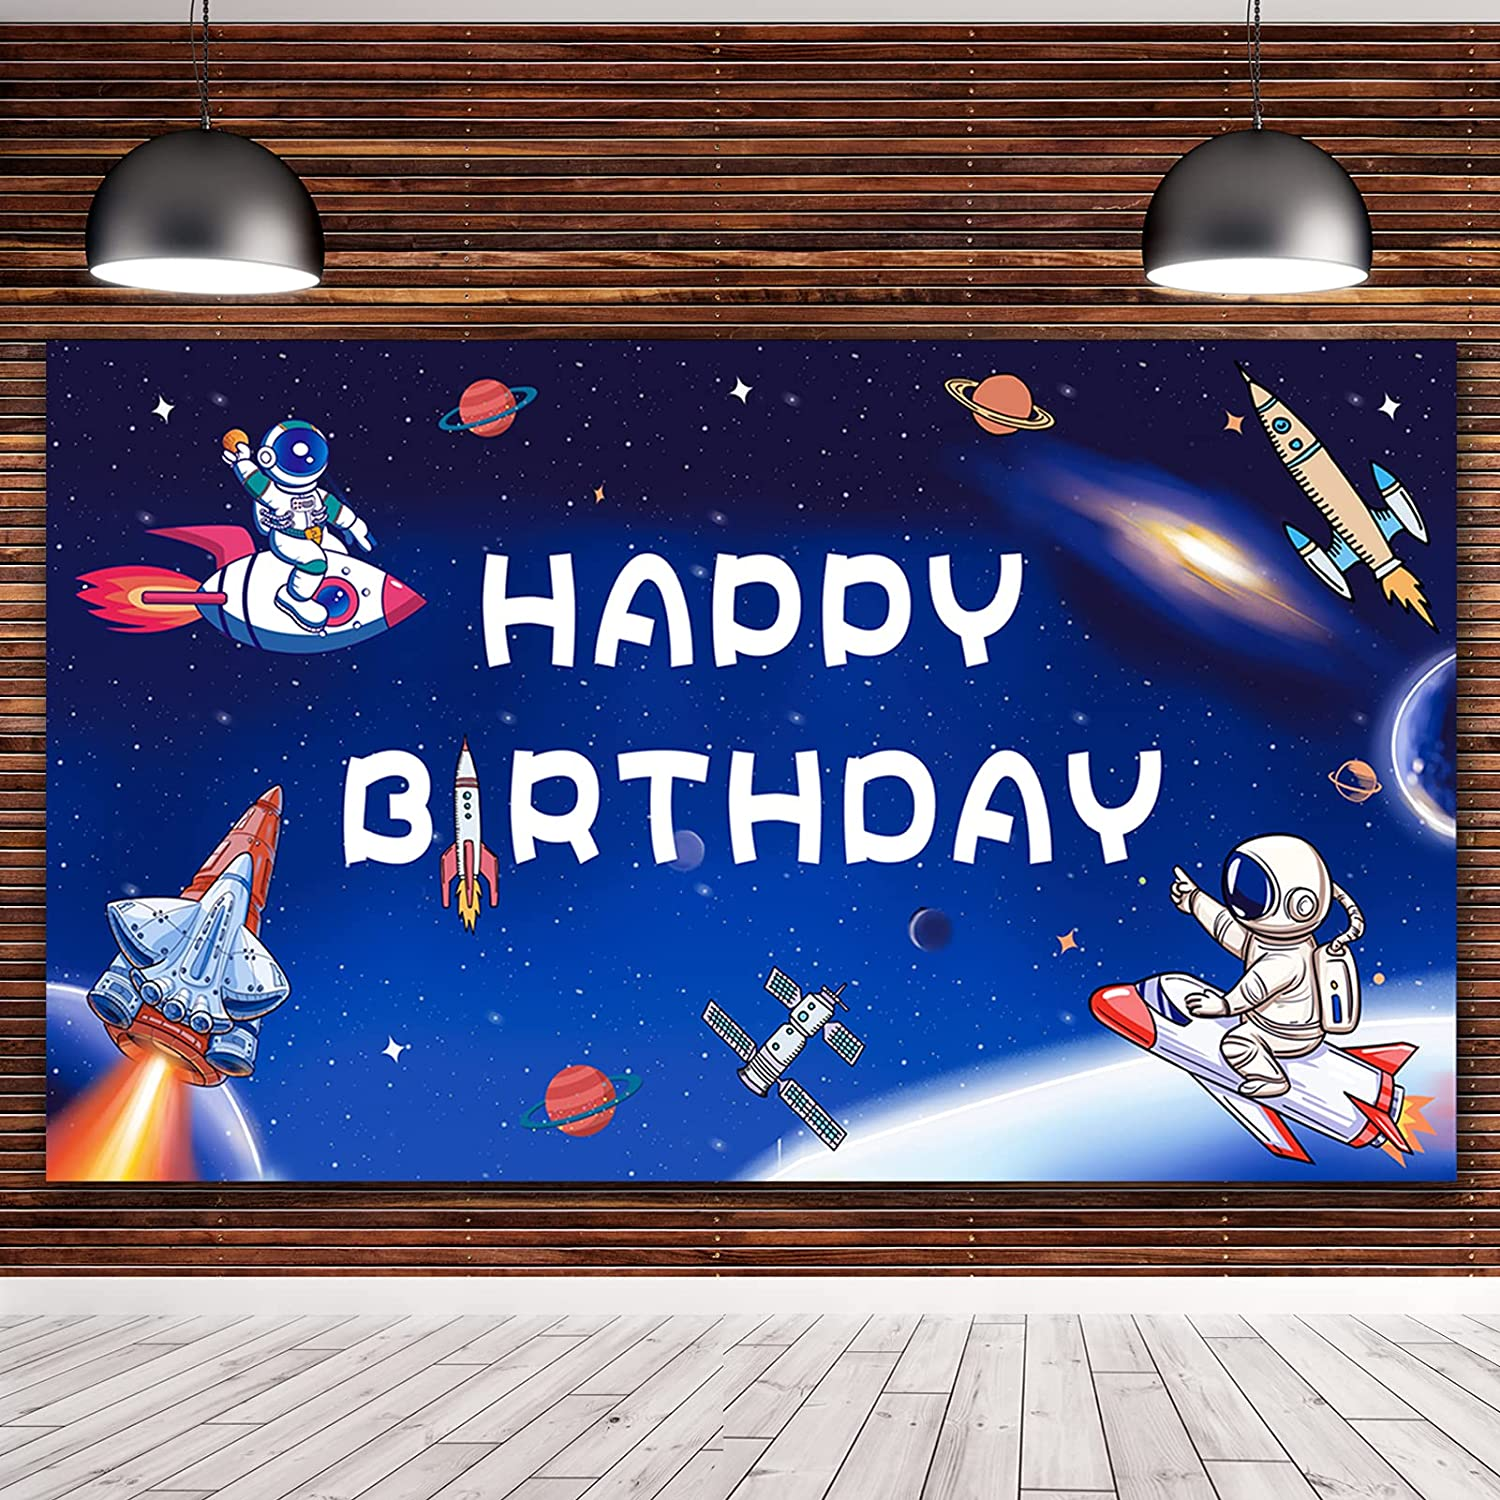 Twohowgen Space Birthday Backdrop Banner, 5.9x3.6ft Rocket Astronaut Solar System Theme Party Decoration Astrology Astronomy Tapestry Galaxy Planet Photo Background Kids Room Decor Supplies